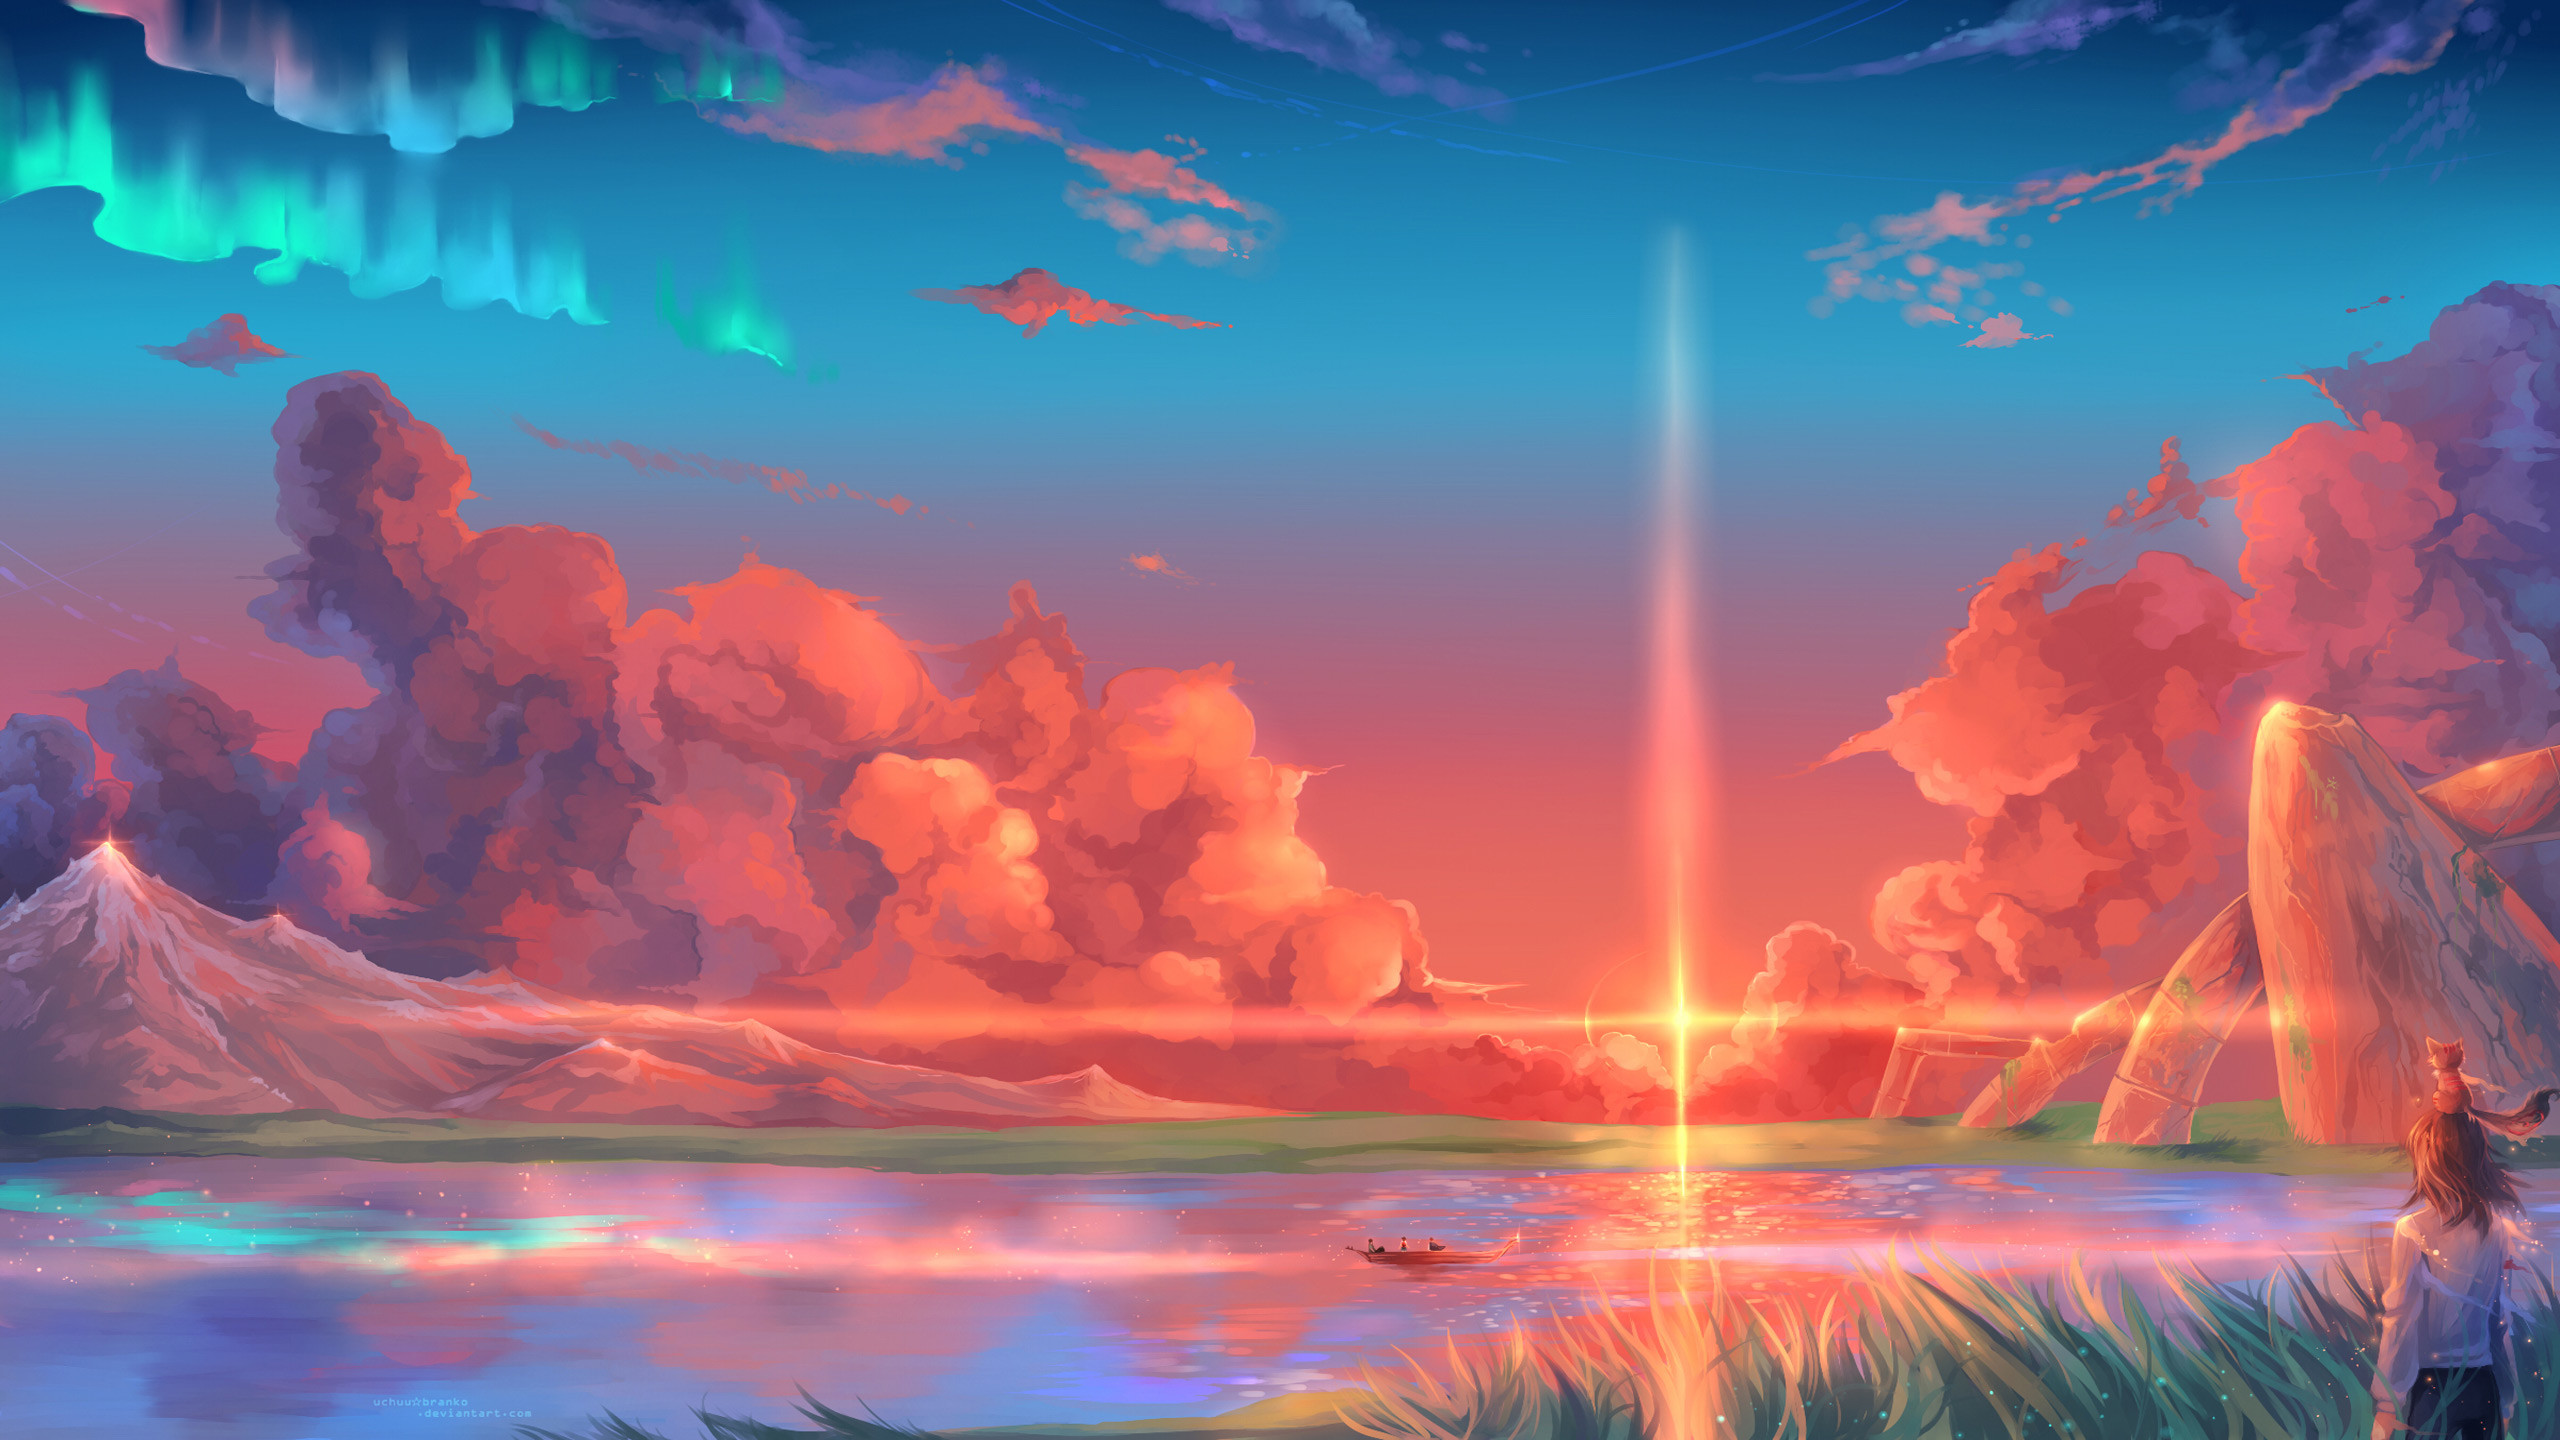 2560x1440 Anime Fantasy Landscape Wallpapers For Android For Free Wallpaper